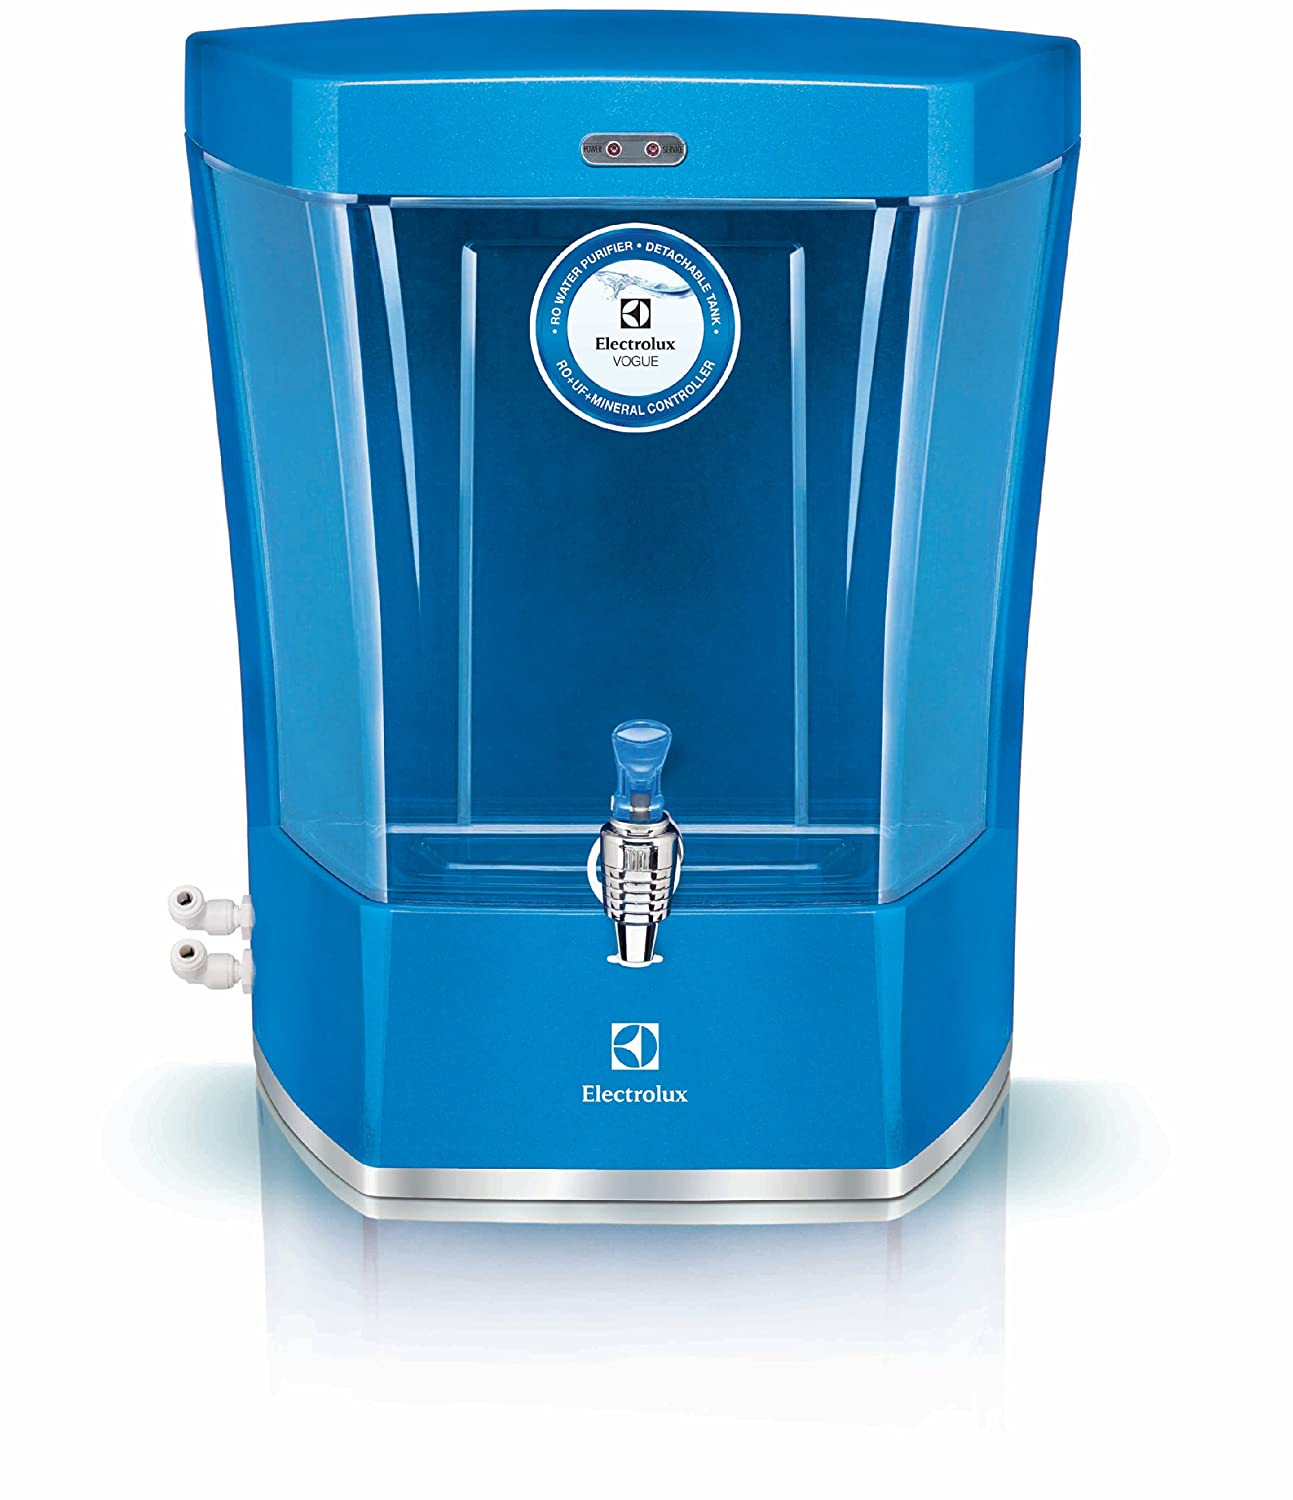 Cheapest Ever—Electrolux 7 Ltr Vogue RO Water Purifier for Rs.9945 only@Snapdeal(Chk price comparison)